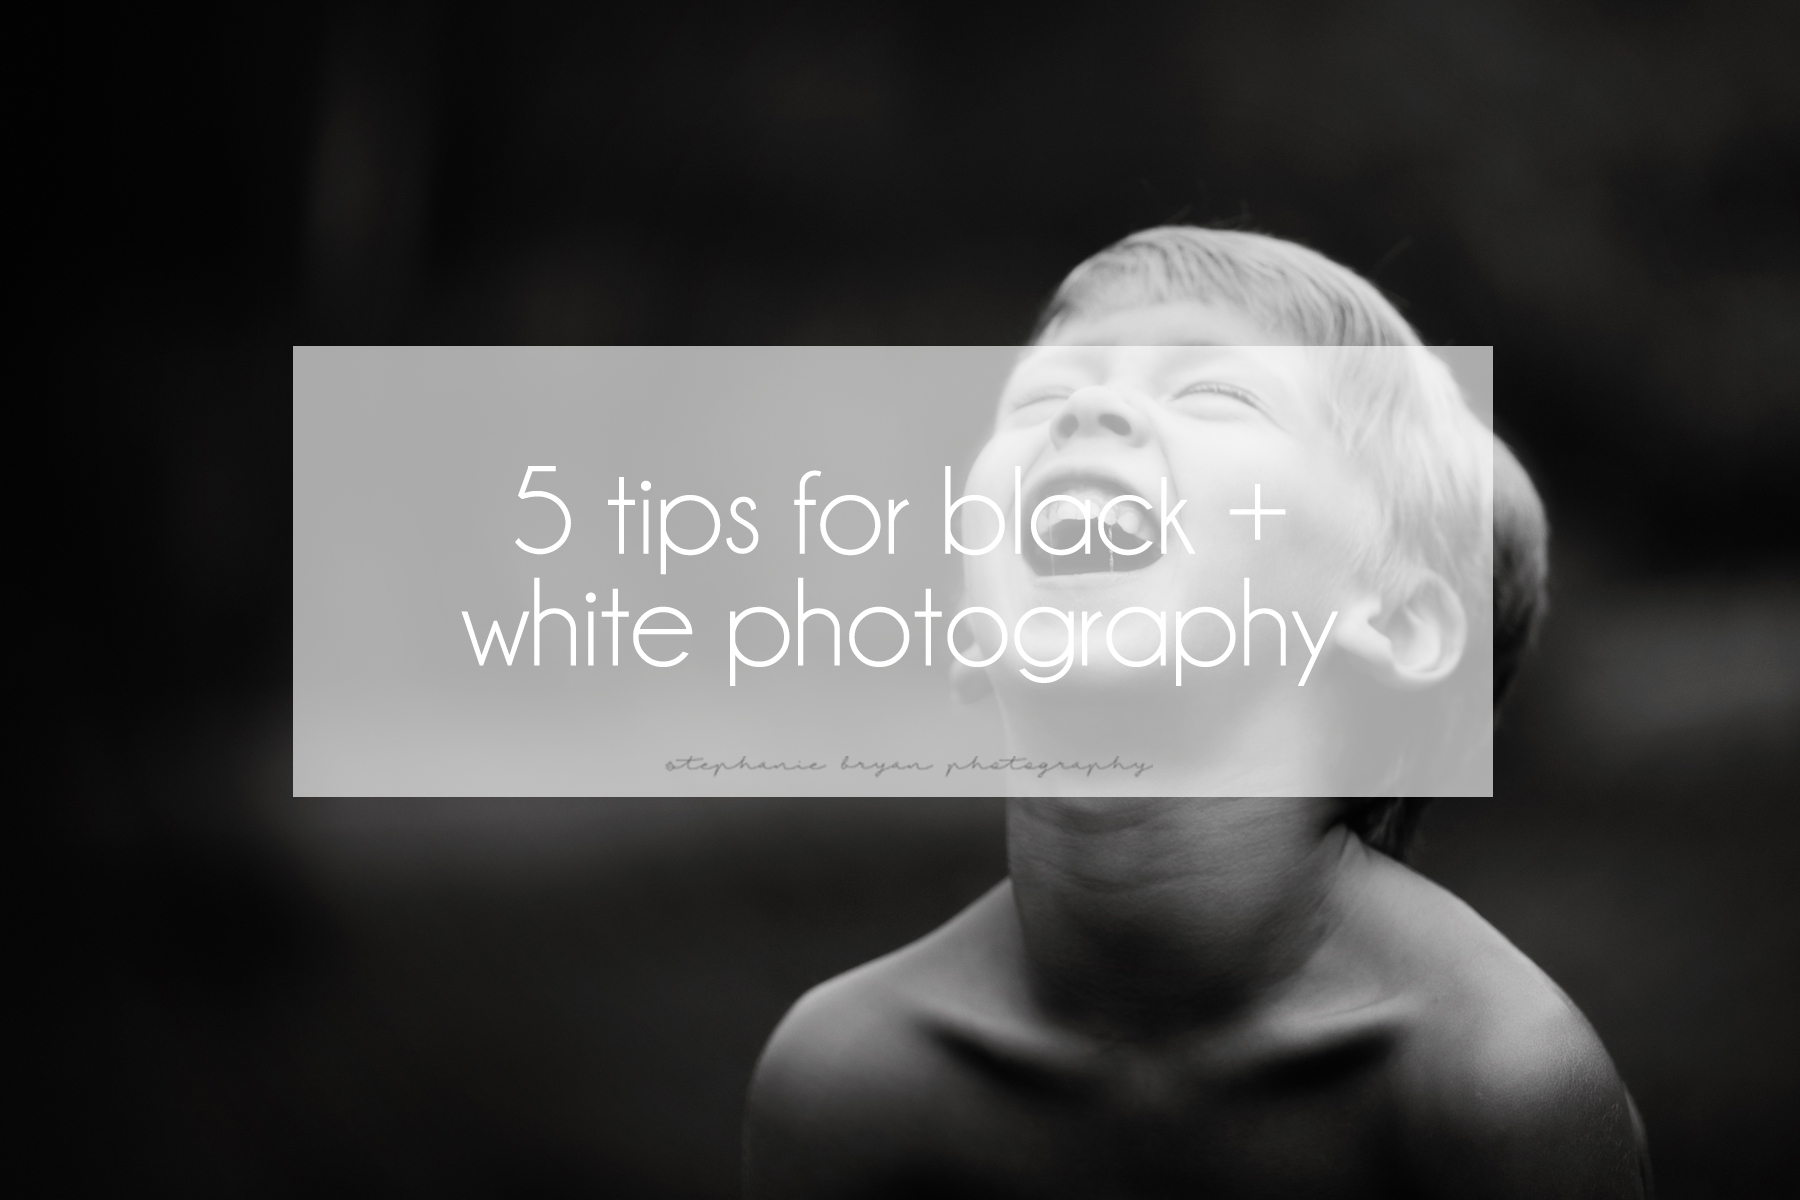 Stephanie Bryan Photography - 5 tips for black + white photography